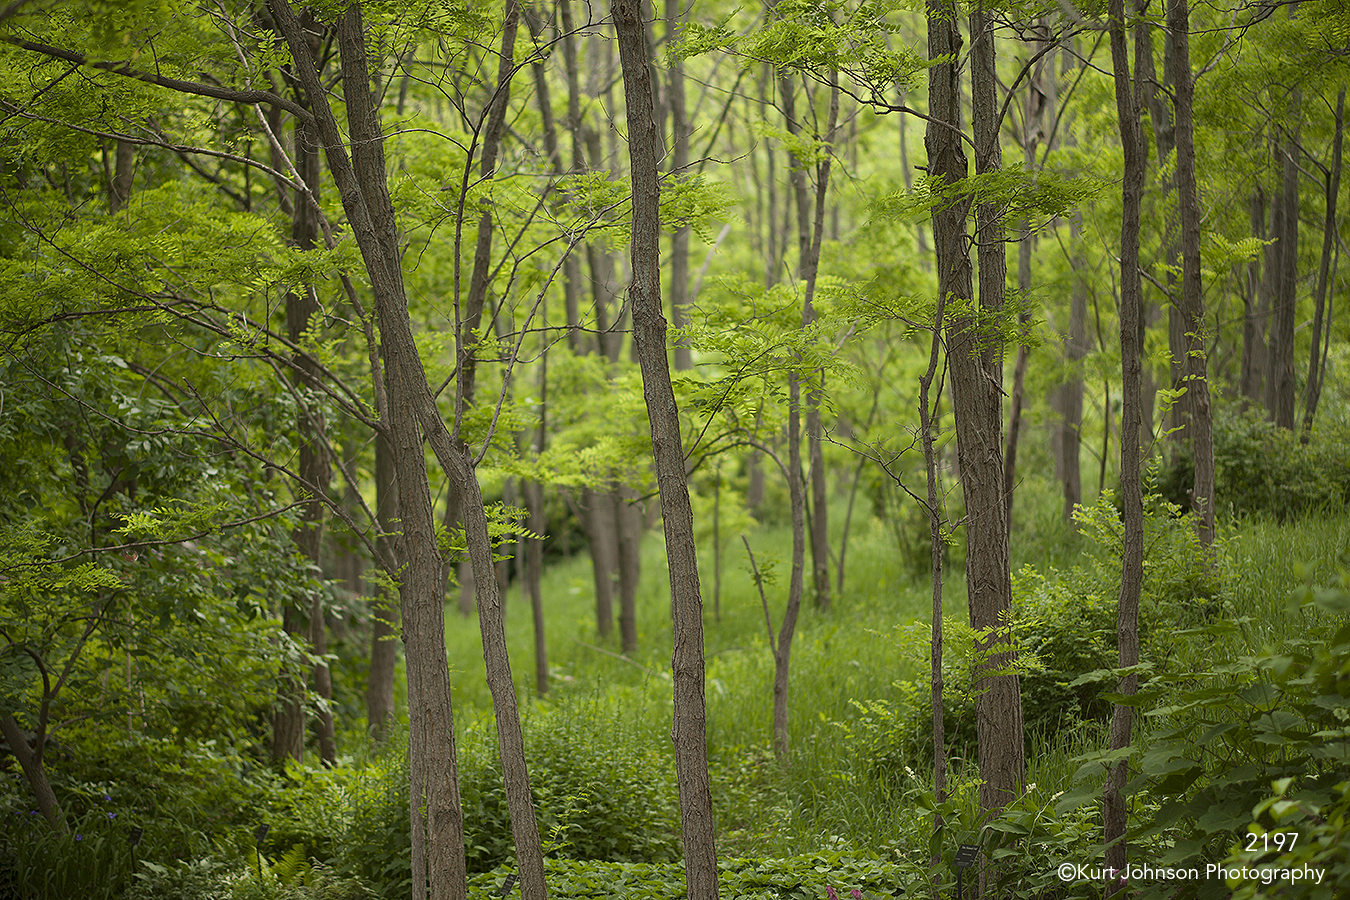 landscape forest trees green leaves